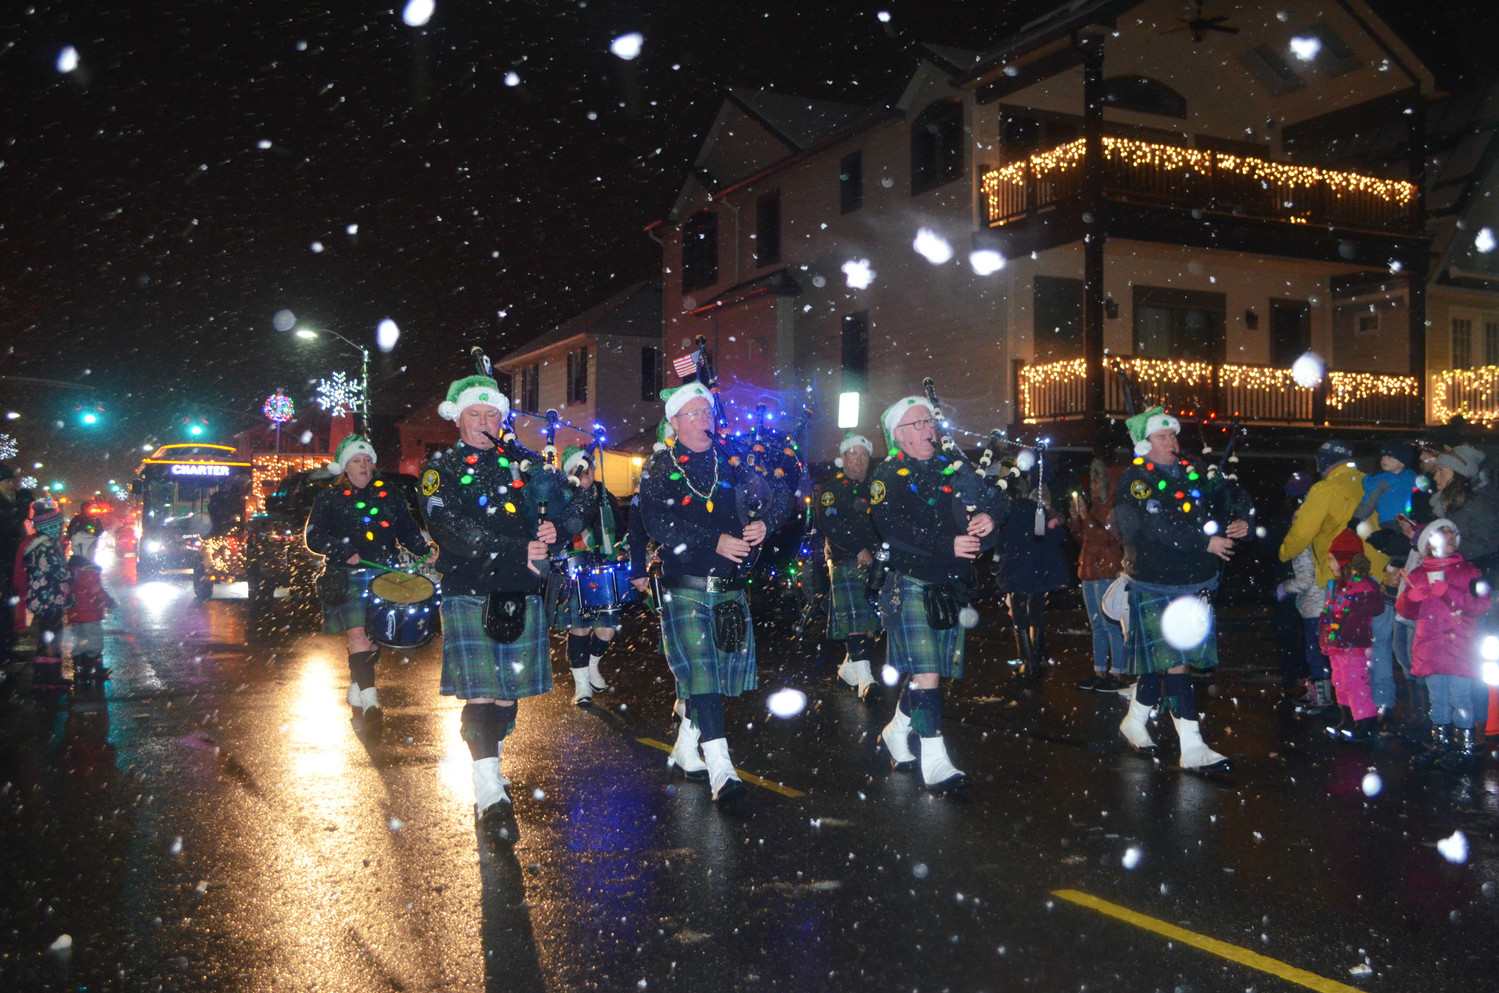 Members of the Breezy Point Catholic Club Pipes and Drums marched down Beech Street and entertained parade goers.